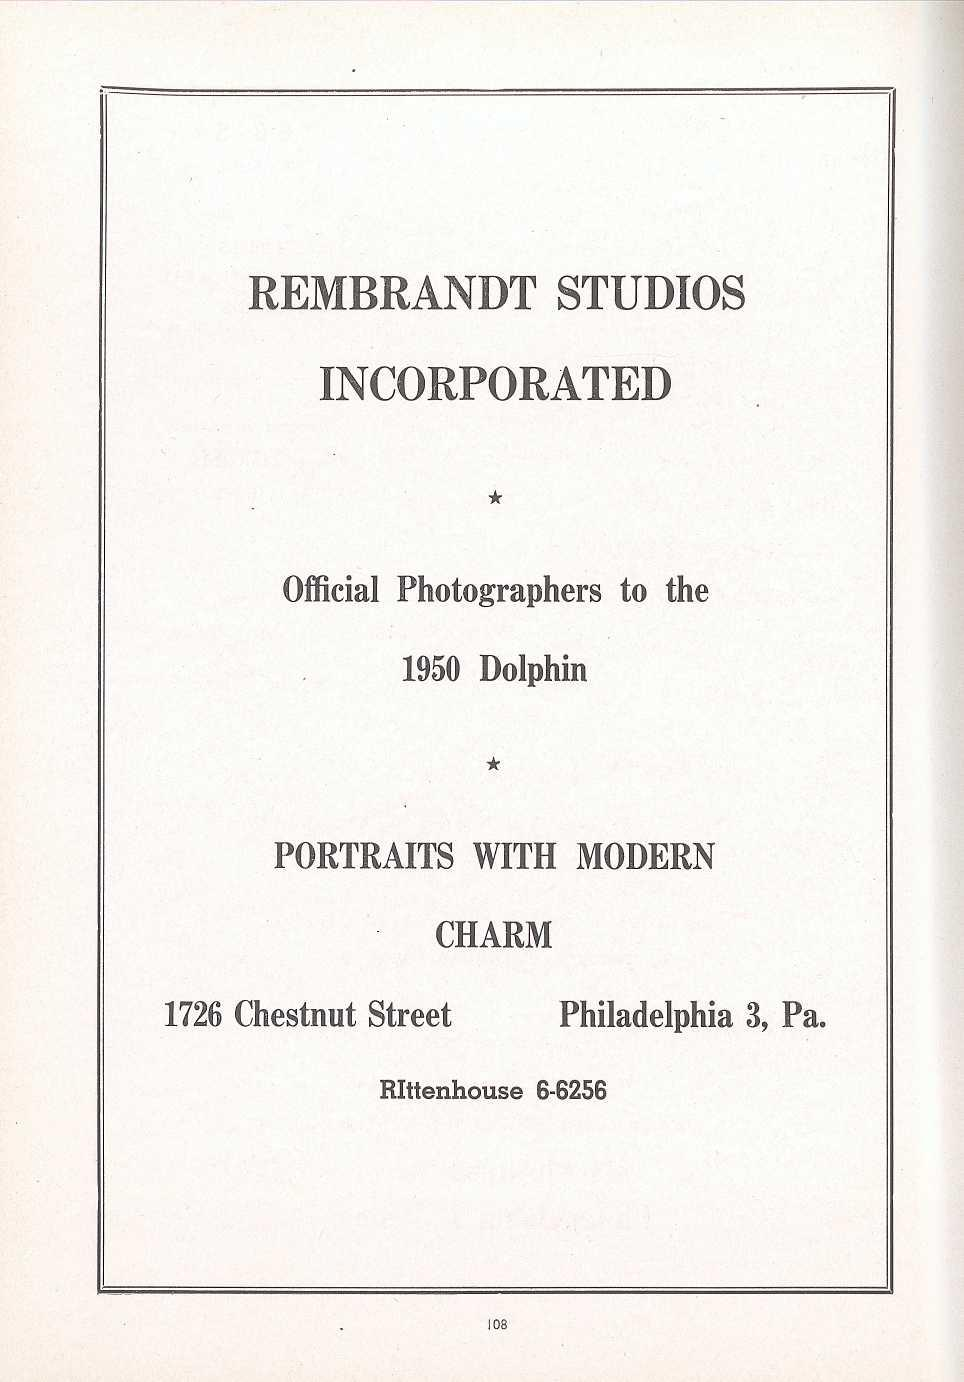 REMBRANDT STUDIOS INCORPORATED Official Photographers to th e 1950 Dolphin